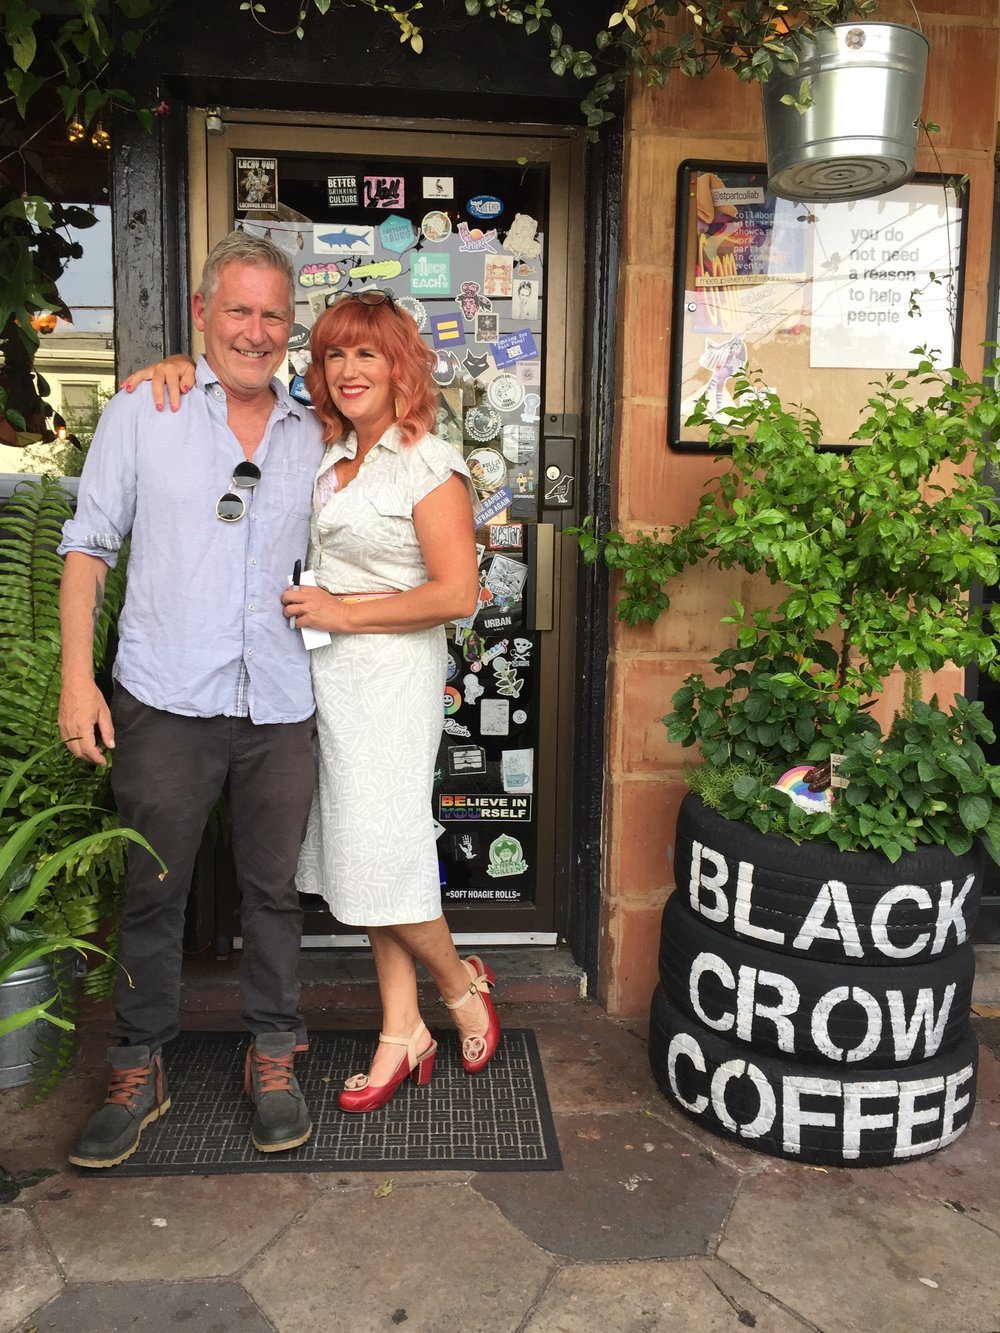 Black Crow Coffee Co. owners Greg Bauman and Deana Hawk.